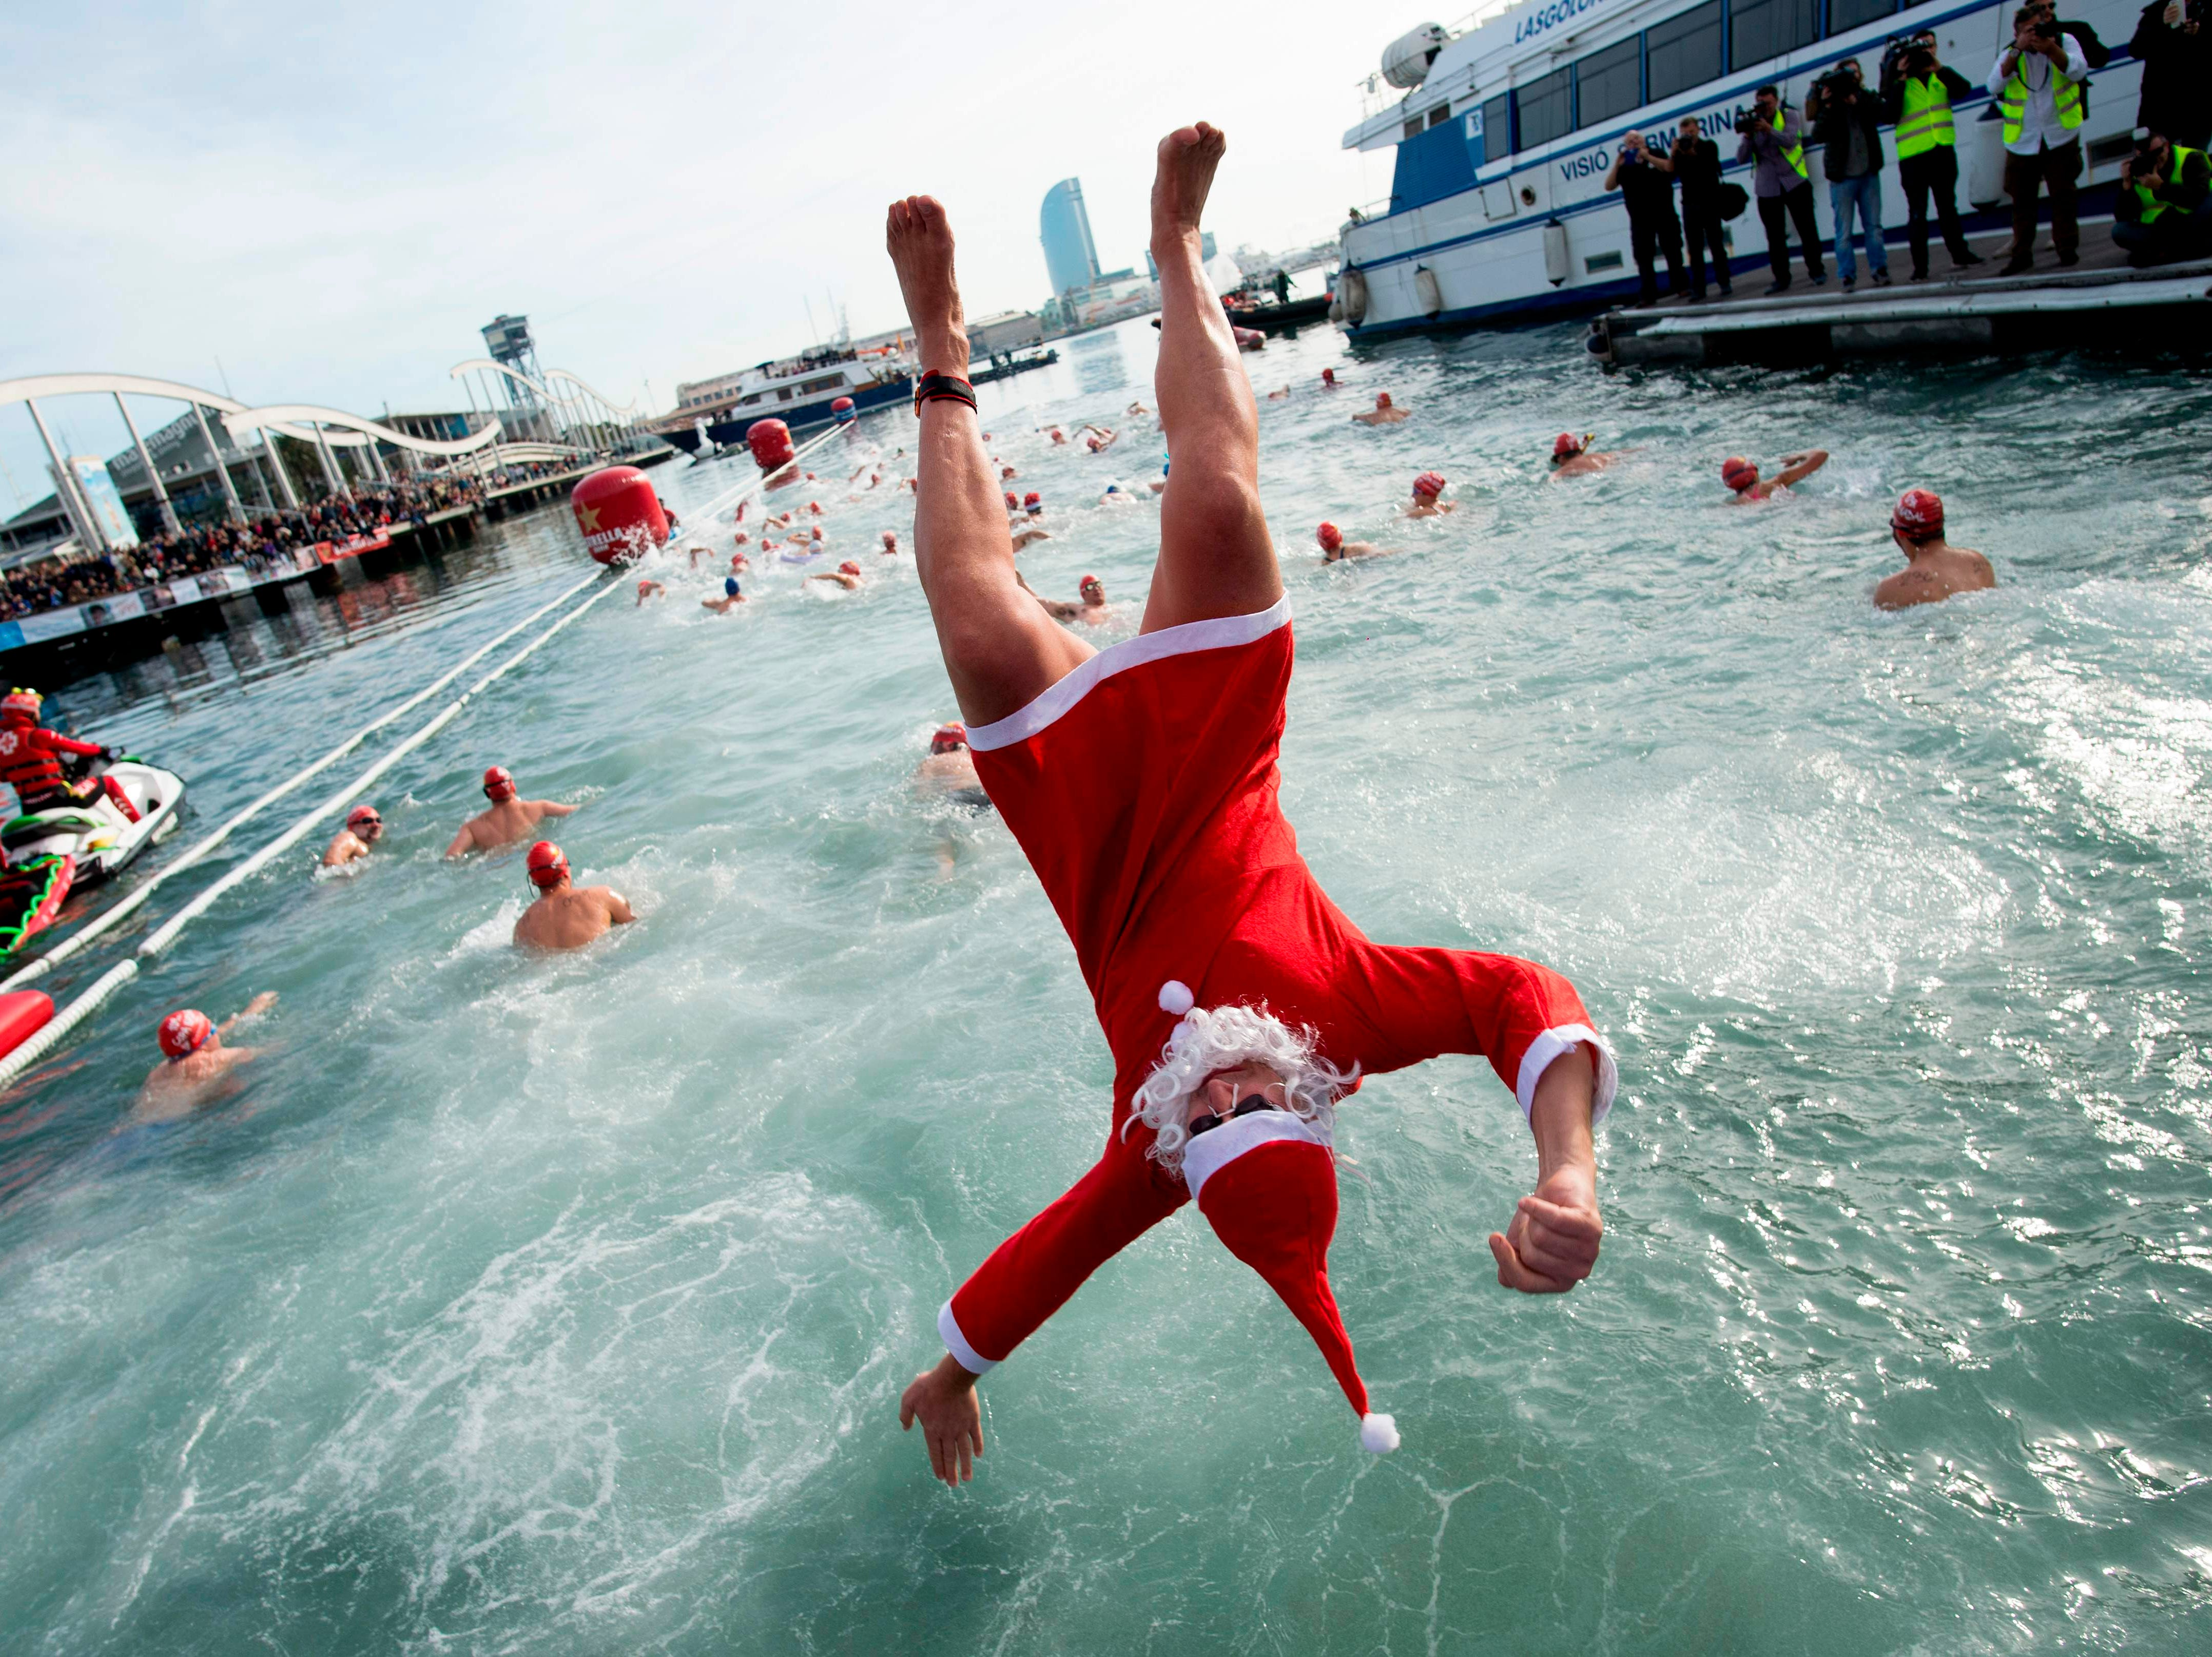 A participant in a Santa Claus costume jumps into the water during the 109th edition of the 'Copa Nadal' (Christmas Cup) swimming competition in Barcelona's Port Vell on Dec. 25, 2018.  The traditional 200-meter Christmas swimming race gathered more than 300 participants on Barcelona's old harbor.